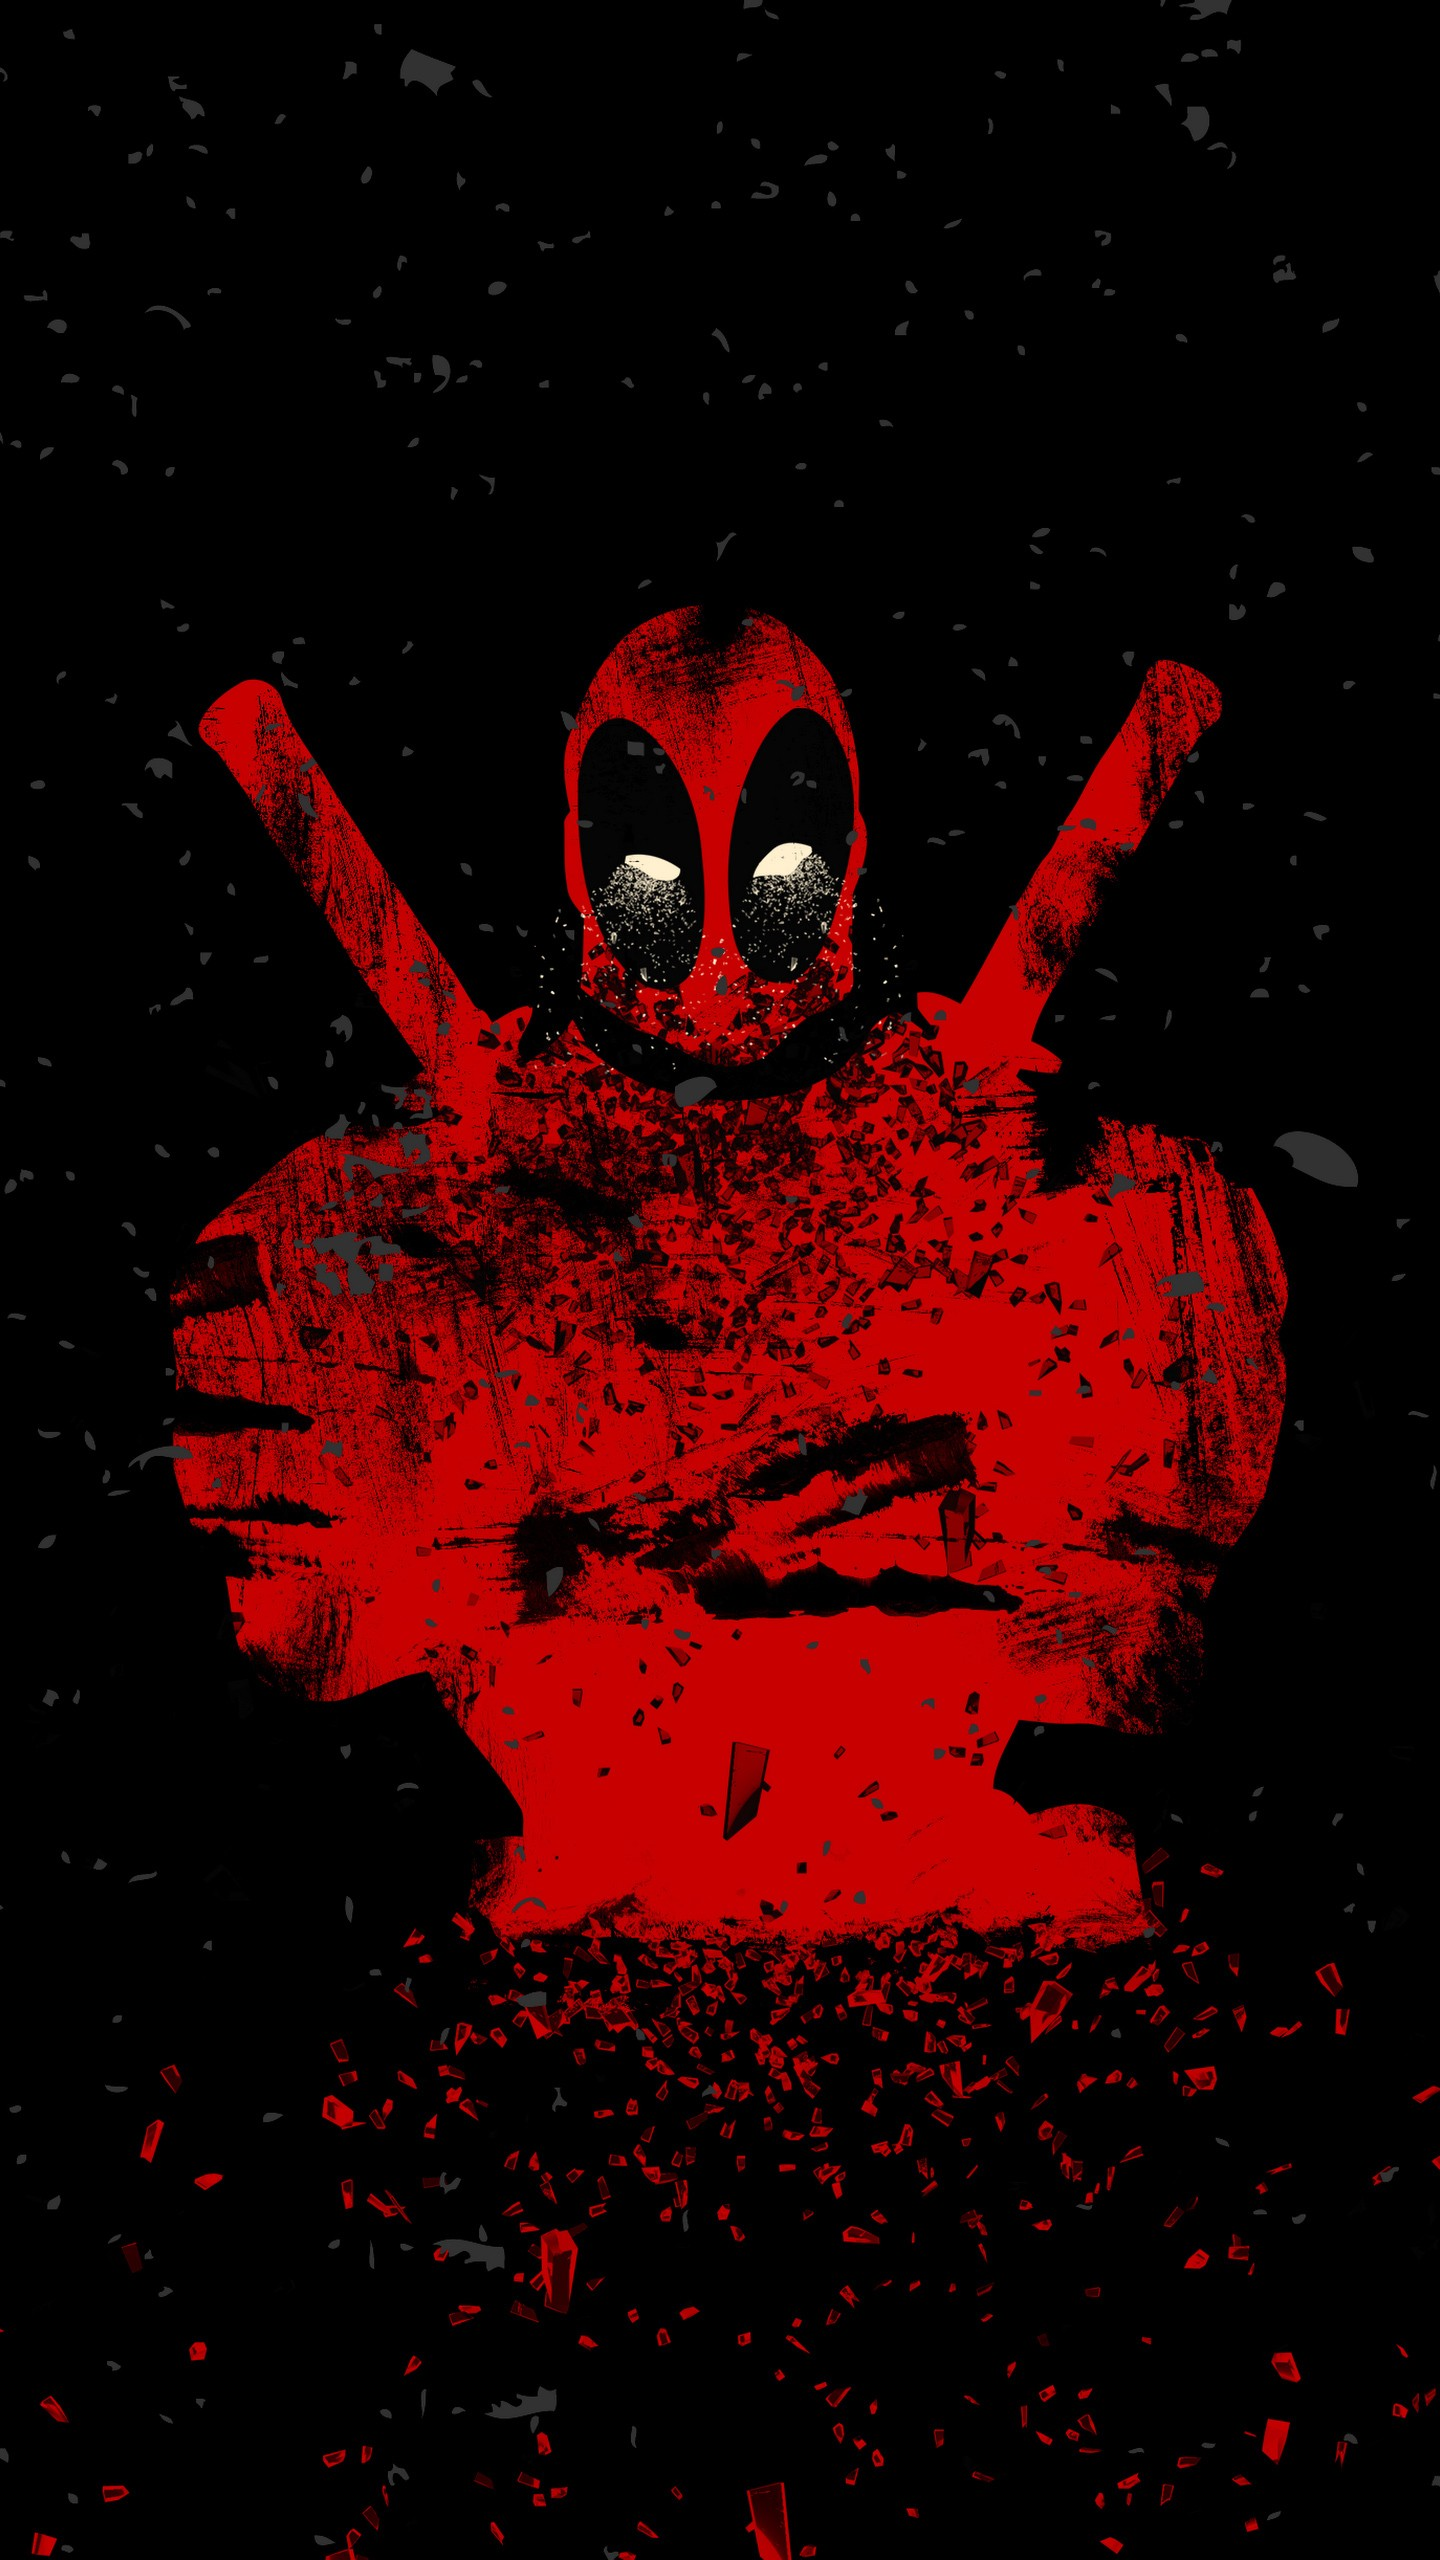 Why So Serious Wallpaper Iphone 6 Deadpool Artwork Wallpapers Hd Wallpapers Id 22778